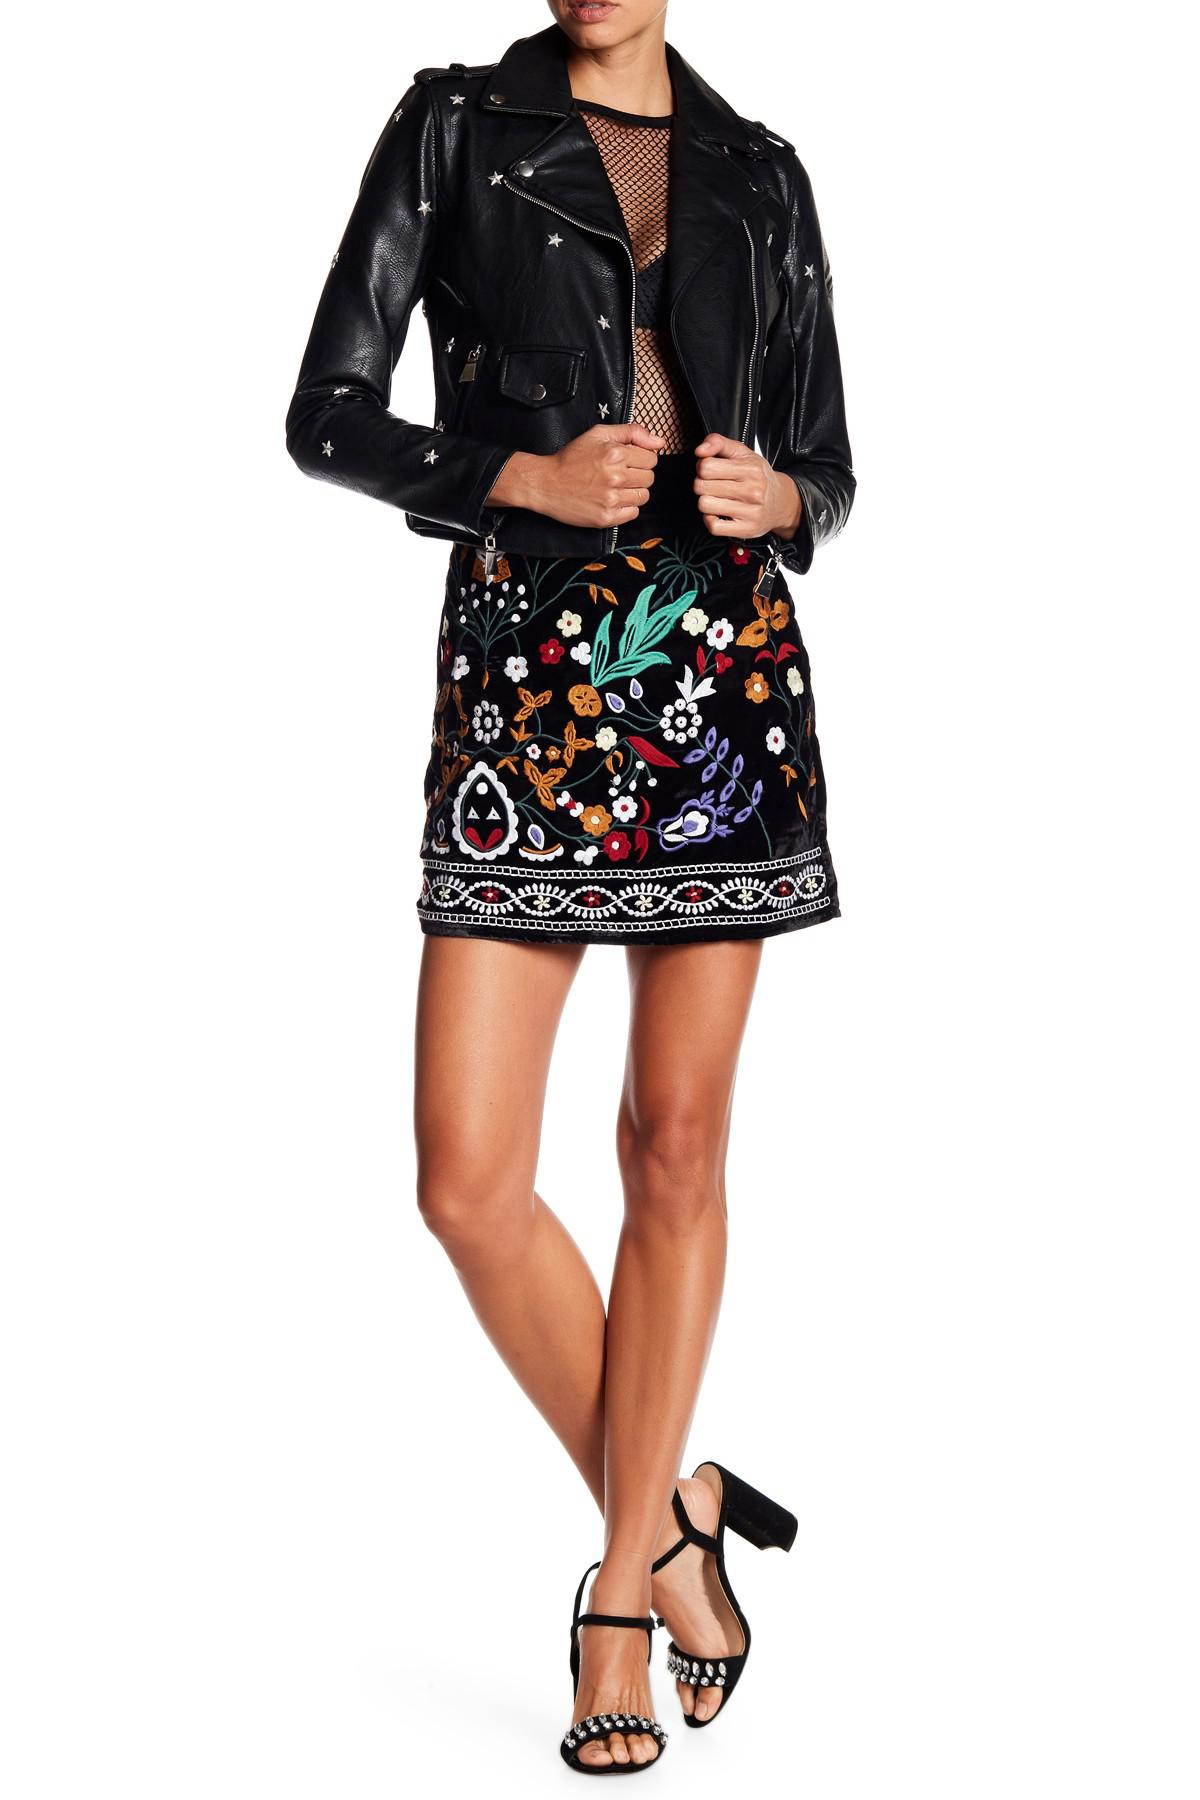 550a0f745 Romeo and Juliet Couture Velvet Embroidered Skirt in Black - Lyst